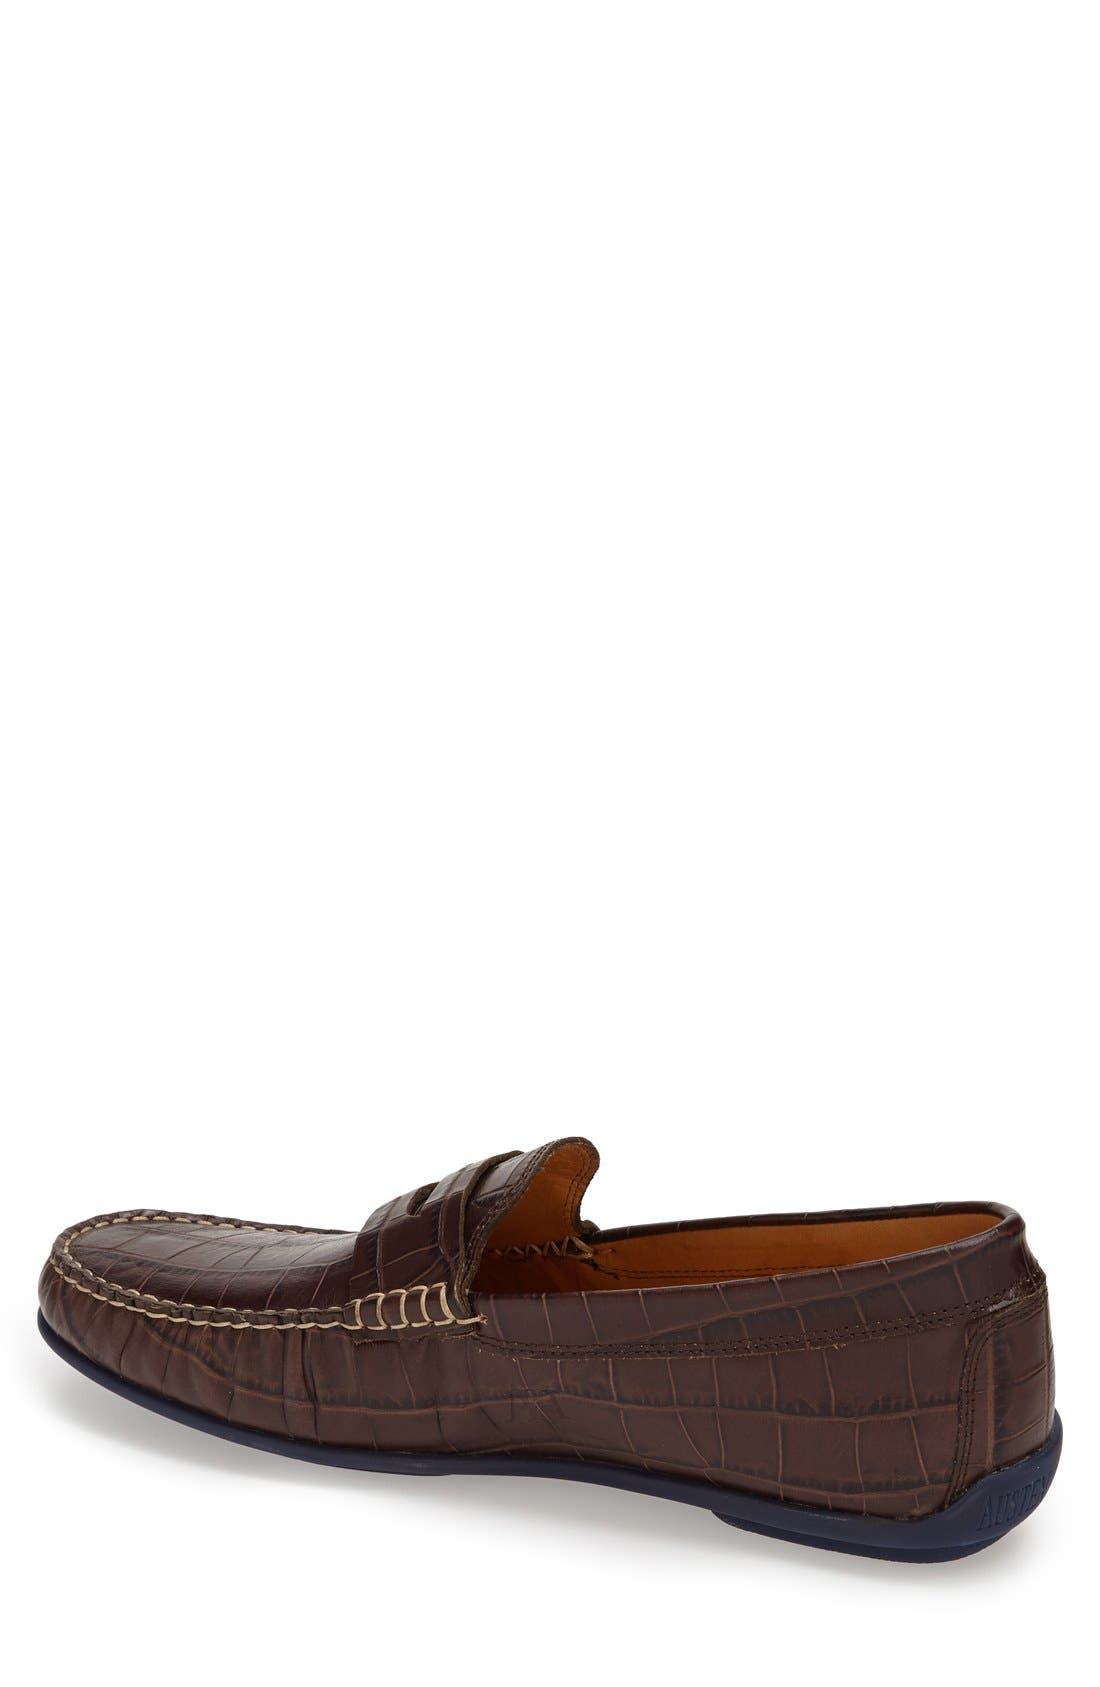 'Waverly' Leather Penny Loafer,                             Alternate thumbnail 8, color,                             BROWN